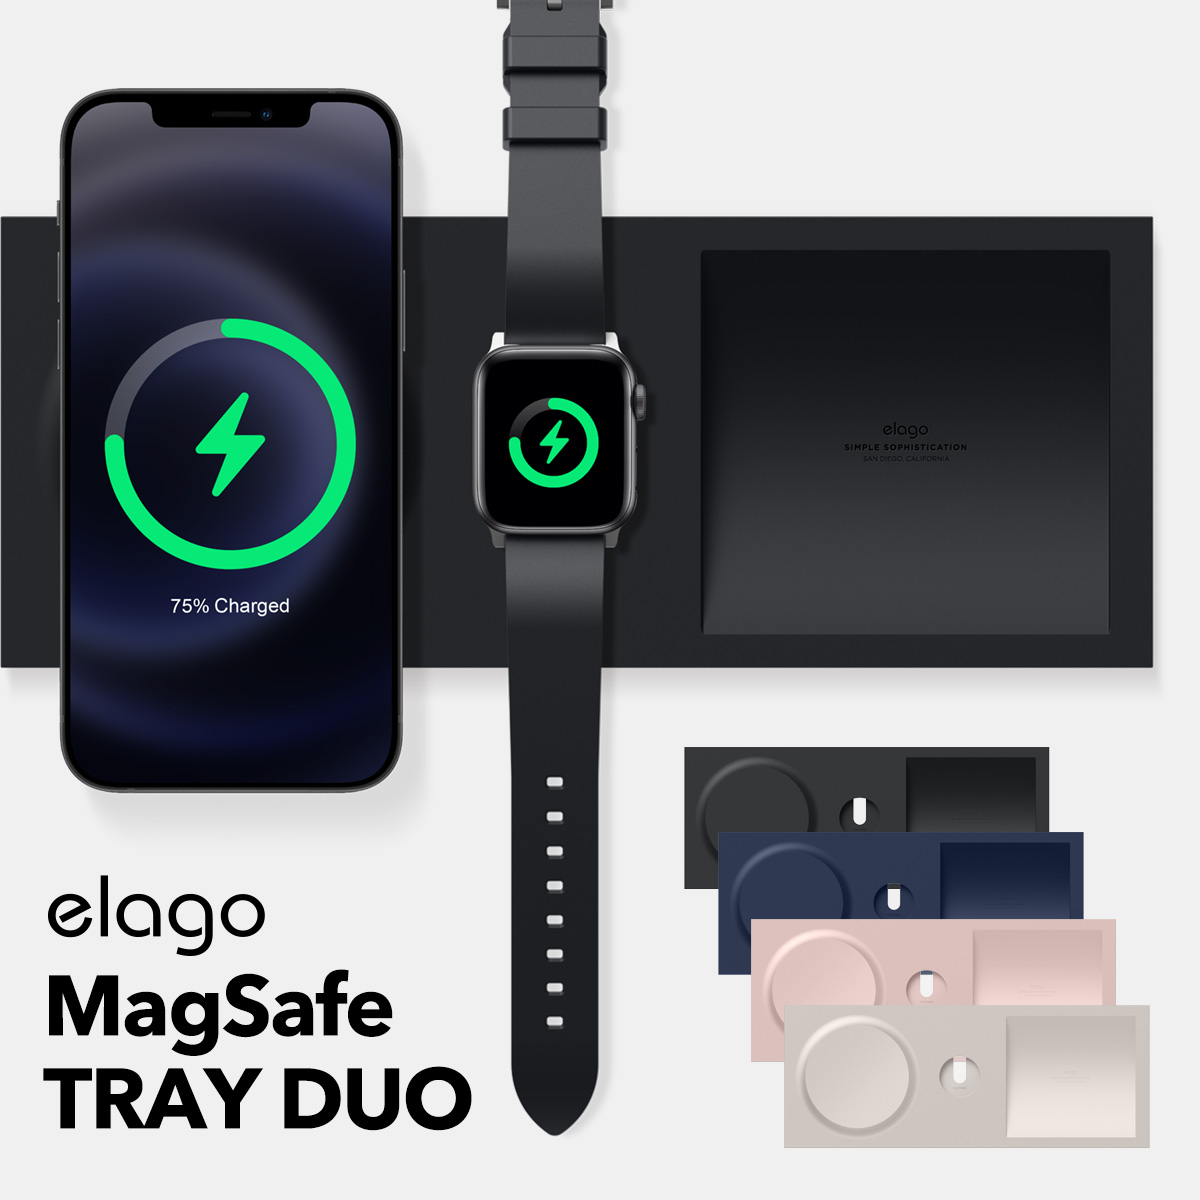 elago MagSafe TRAY DUO for iPhone / Apple Watch